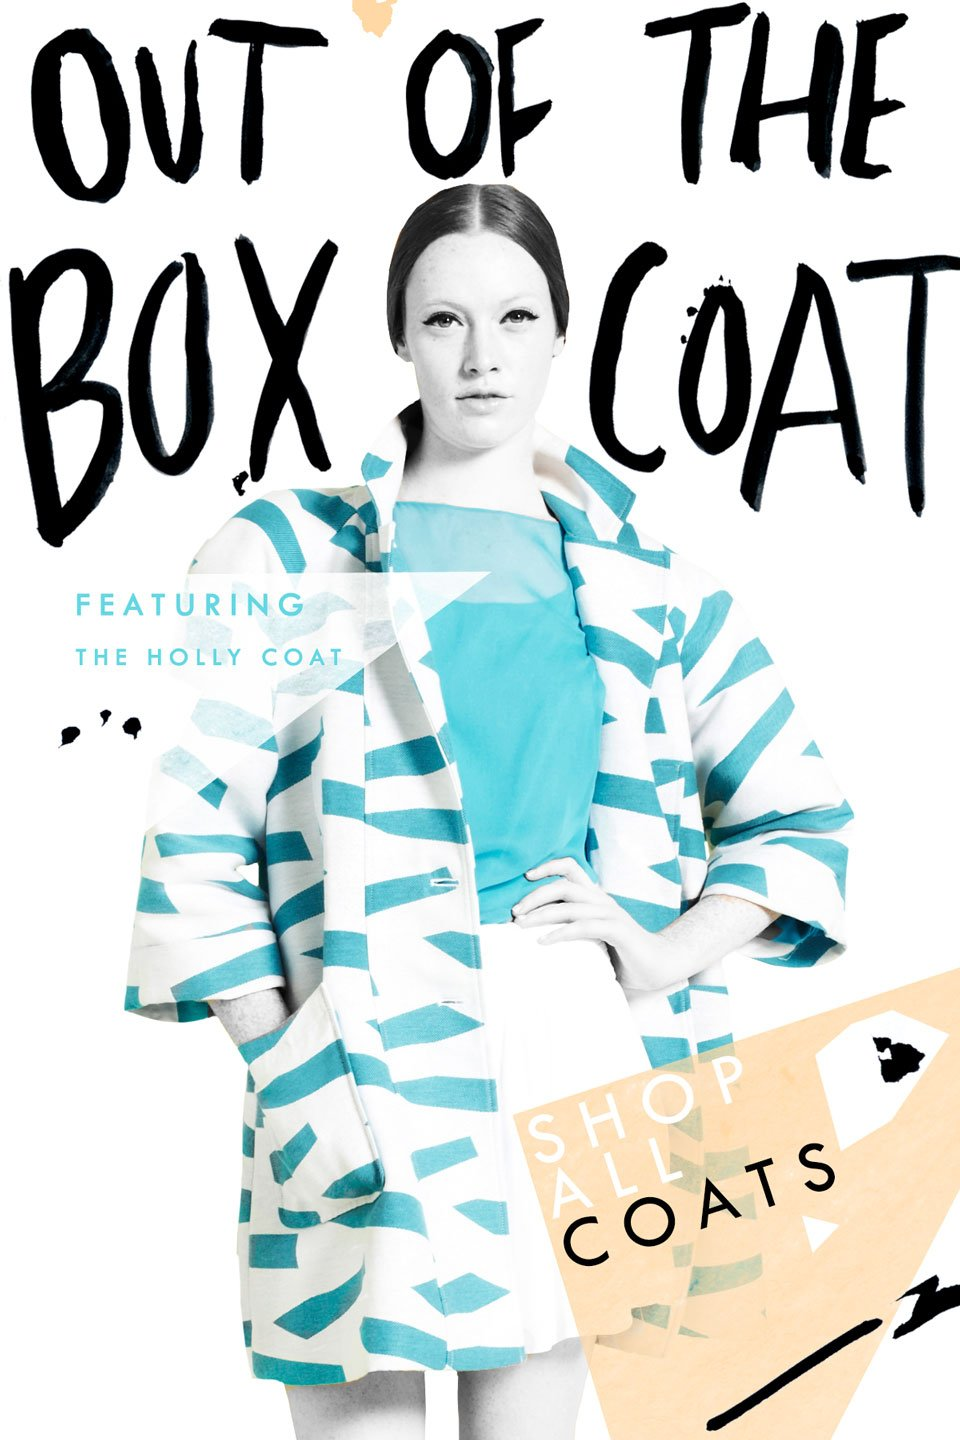 Out of the Box Coat!